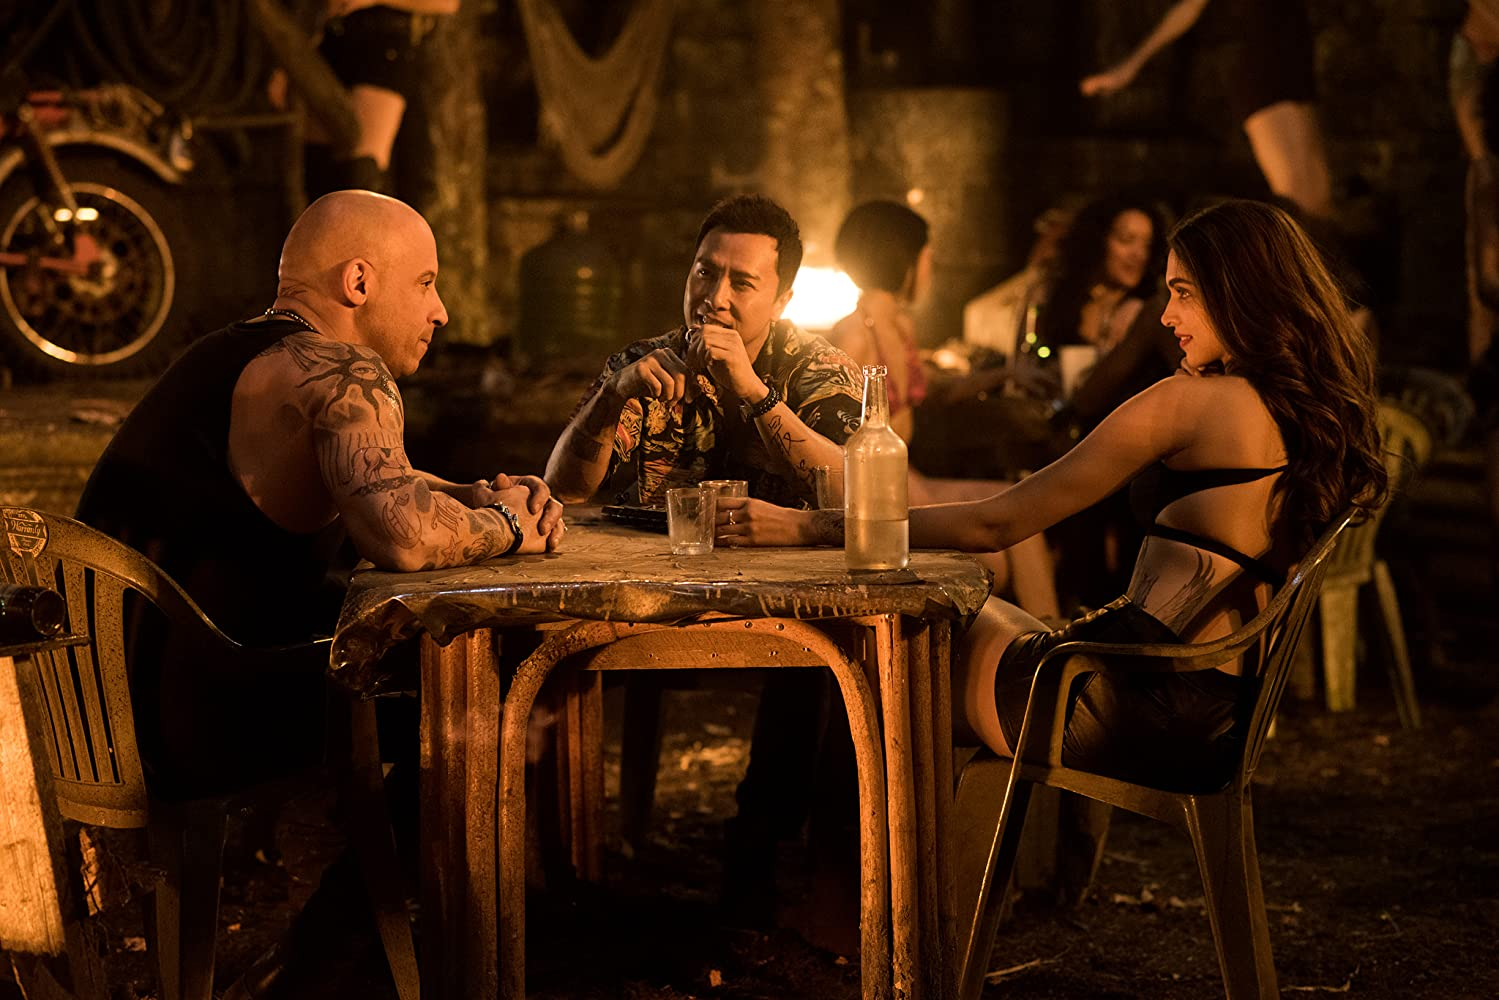 xXx: Reactivado (Return of Xander Cage)